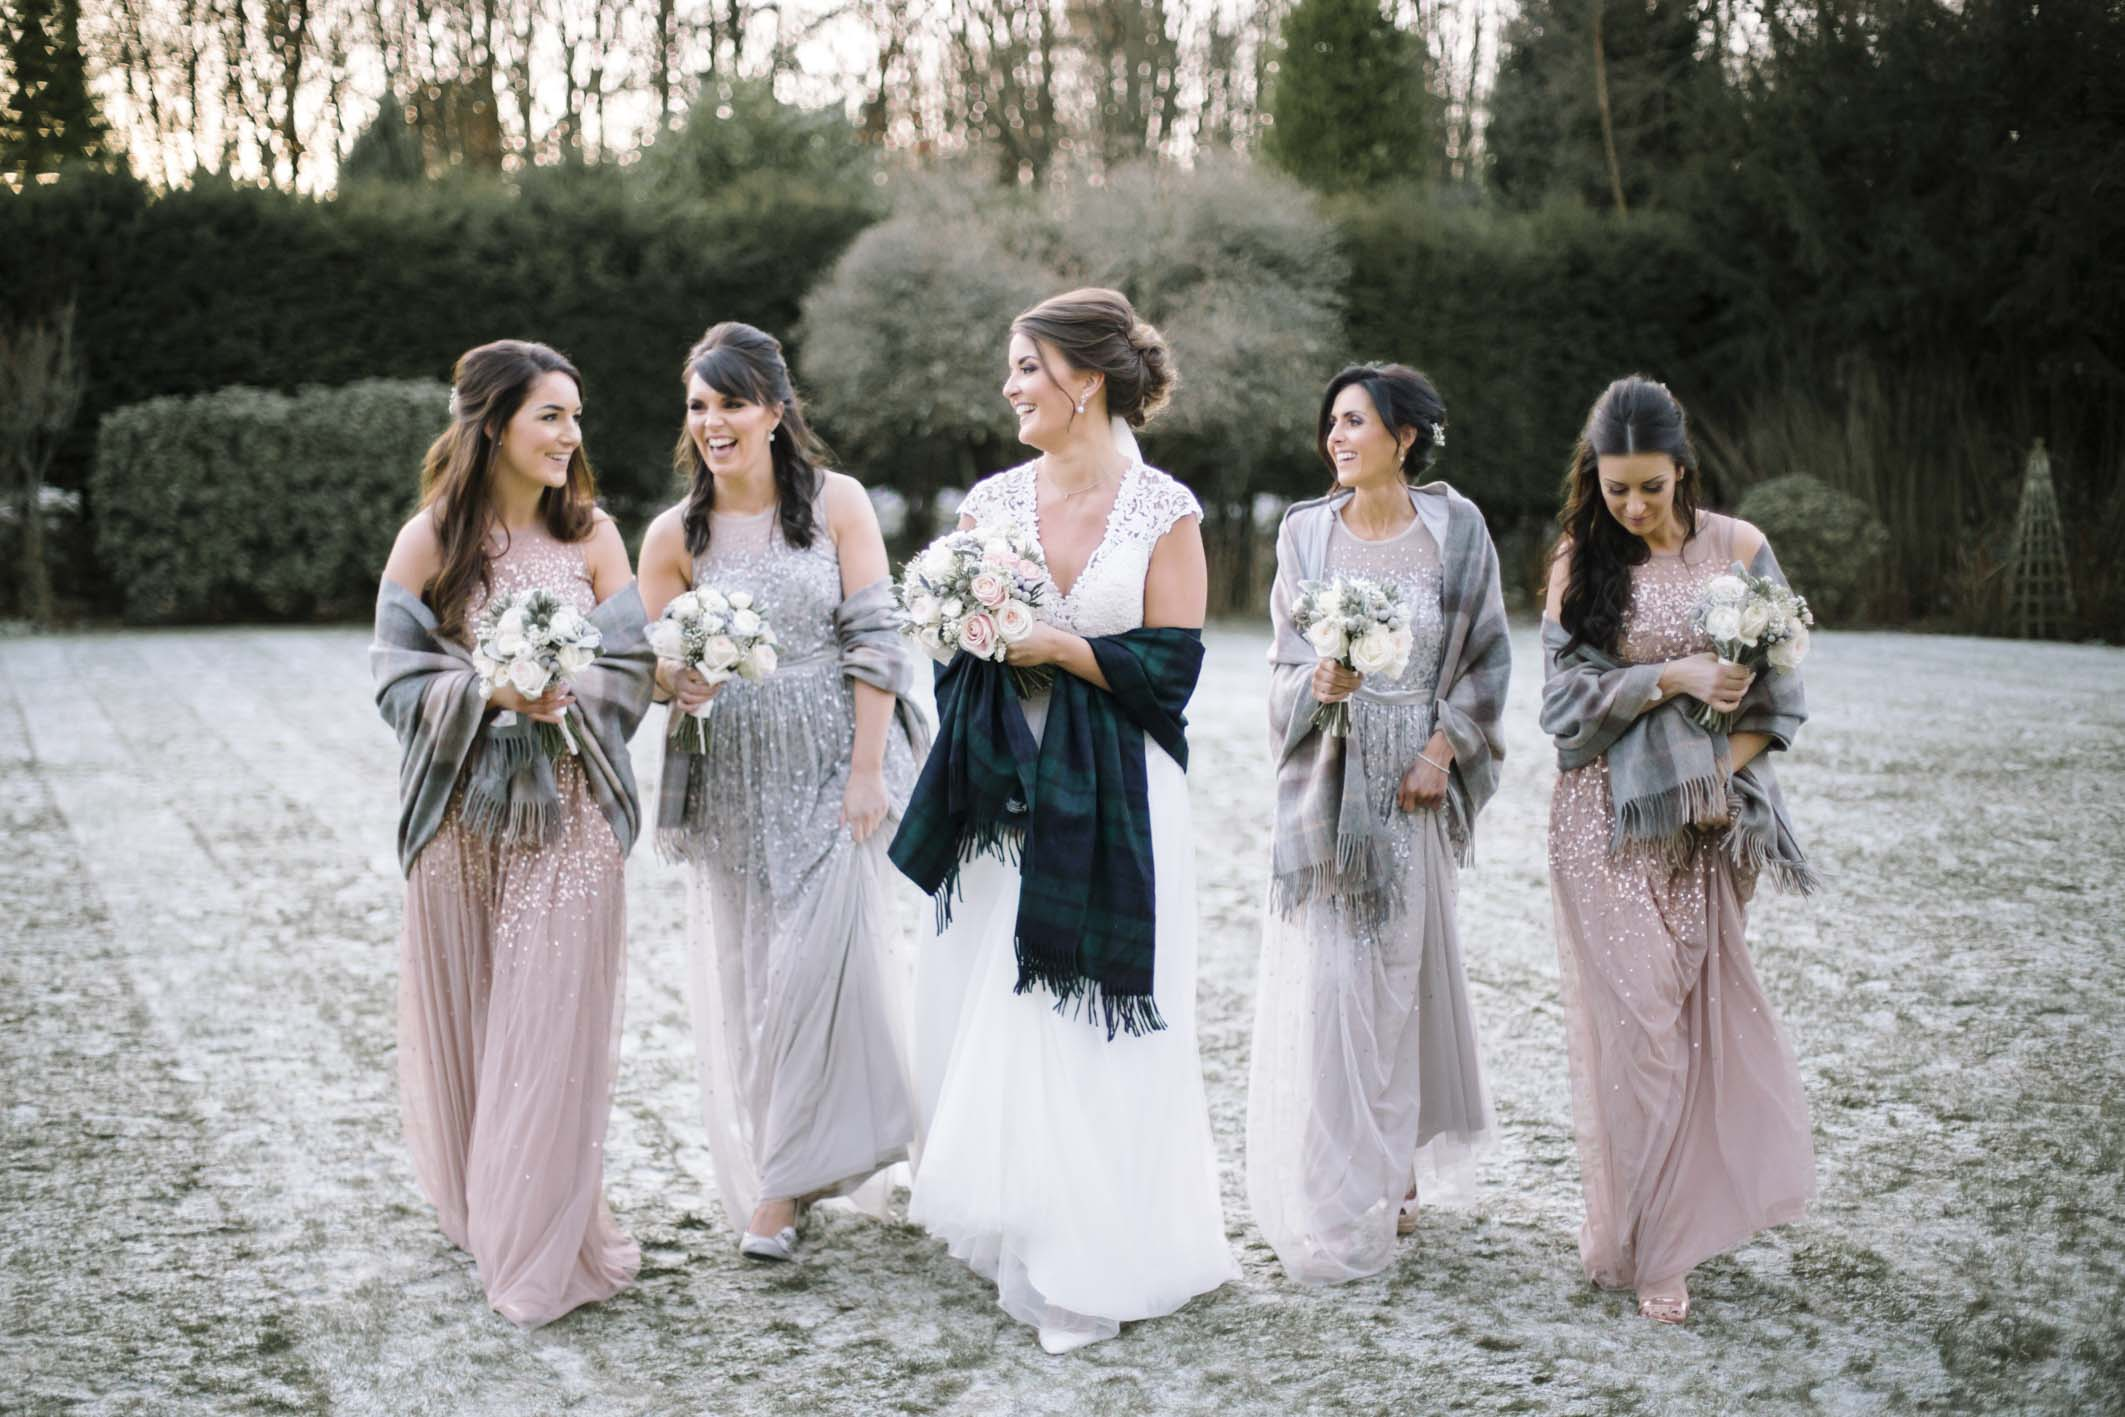 Winter Wedding at Balbirnie House | Bridal Party portraits in the snow by Edinburgh Wedding Photographer Ceranna Photography